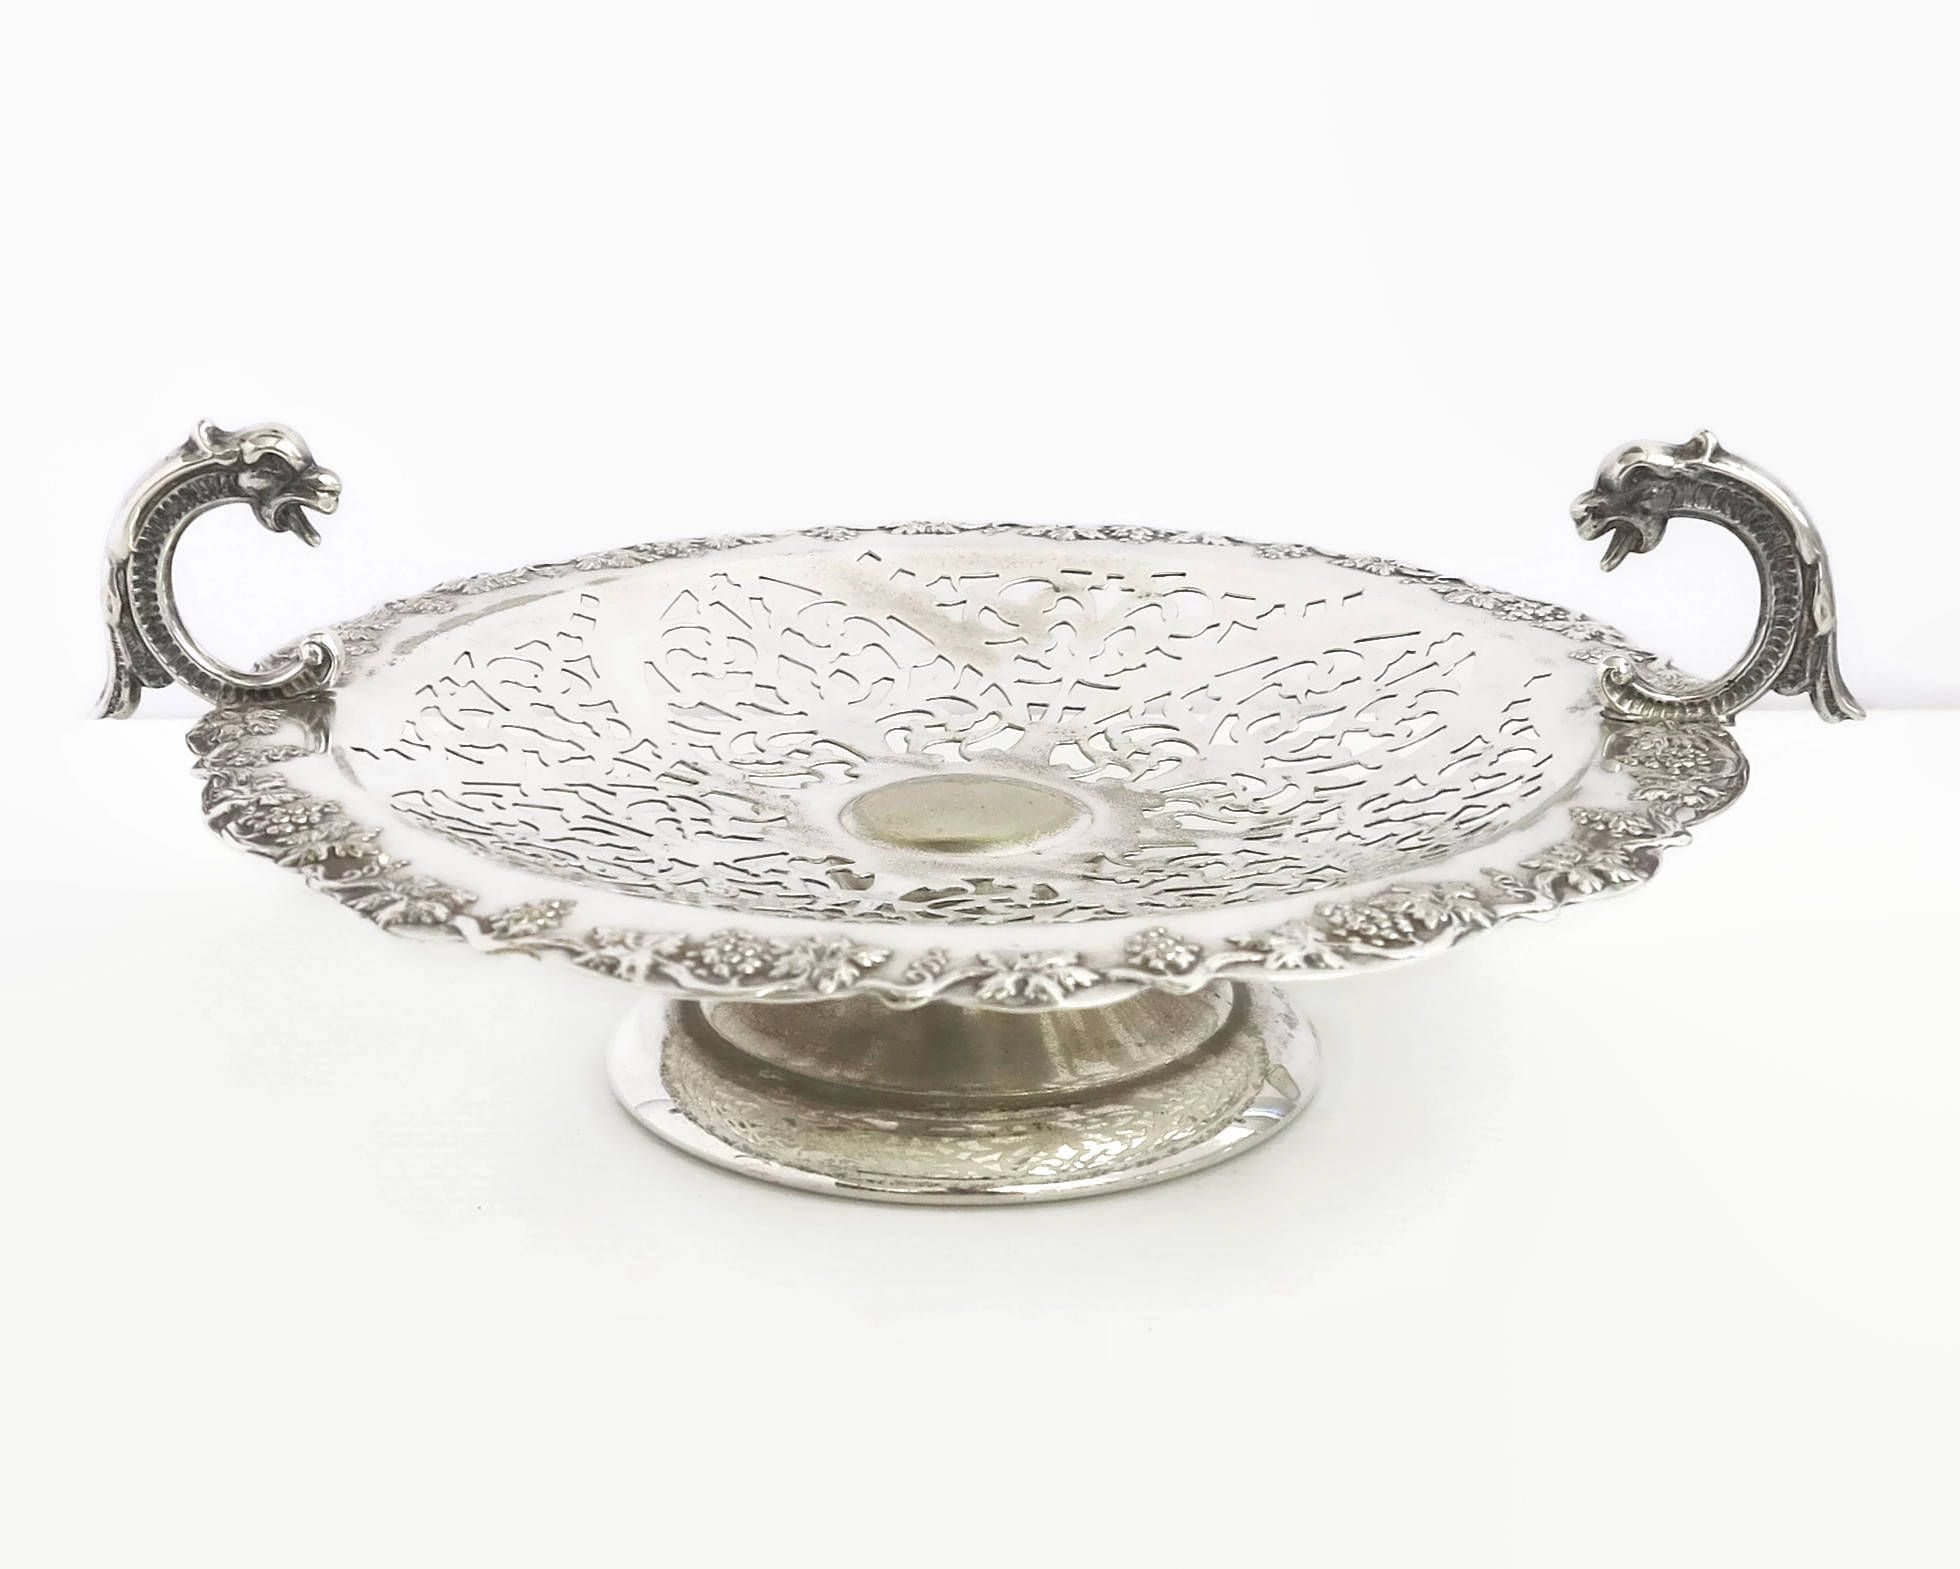 Mid century silver plated cake stand border of grapes and leaves